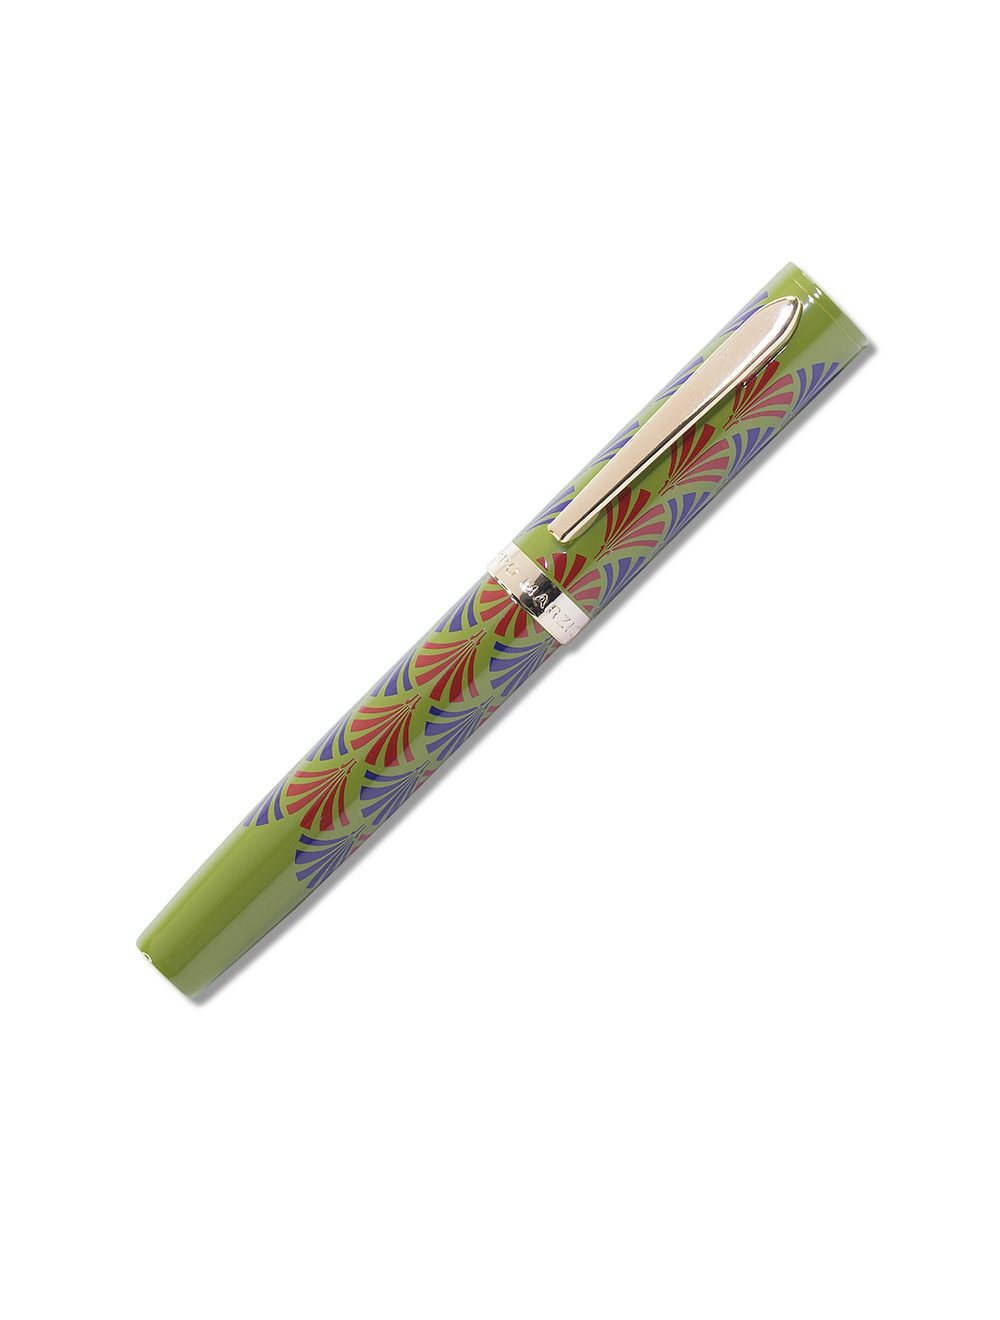 Laquered Bijoux Mini Pen - Olive Green